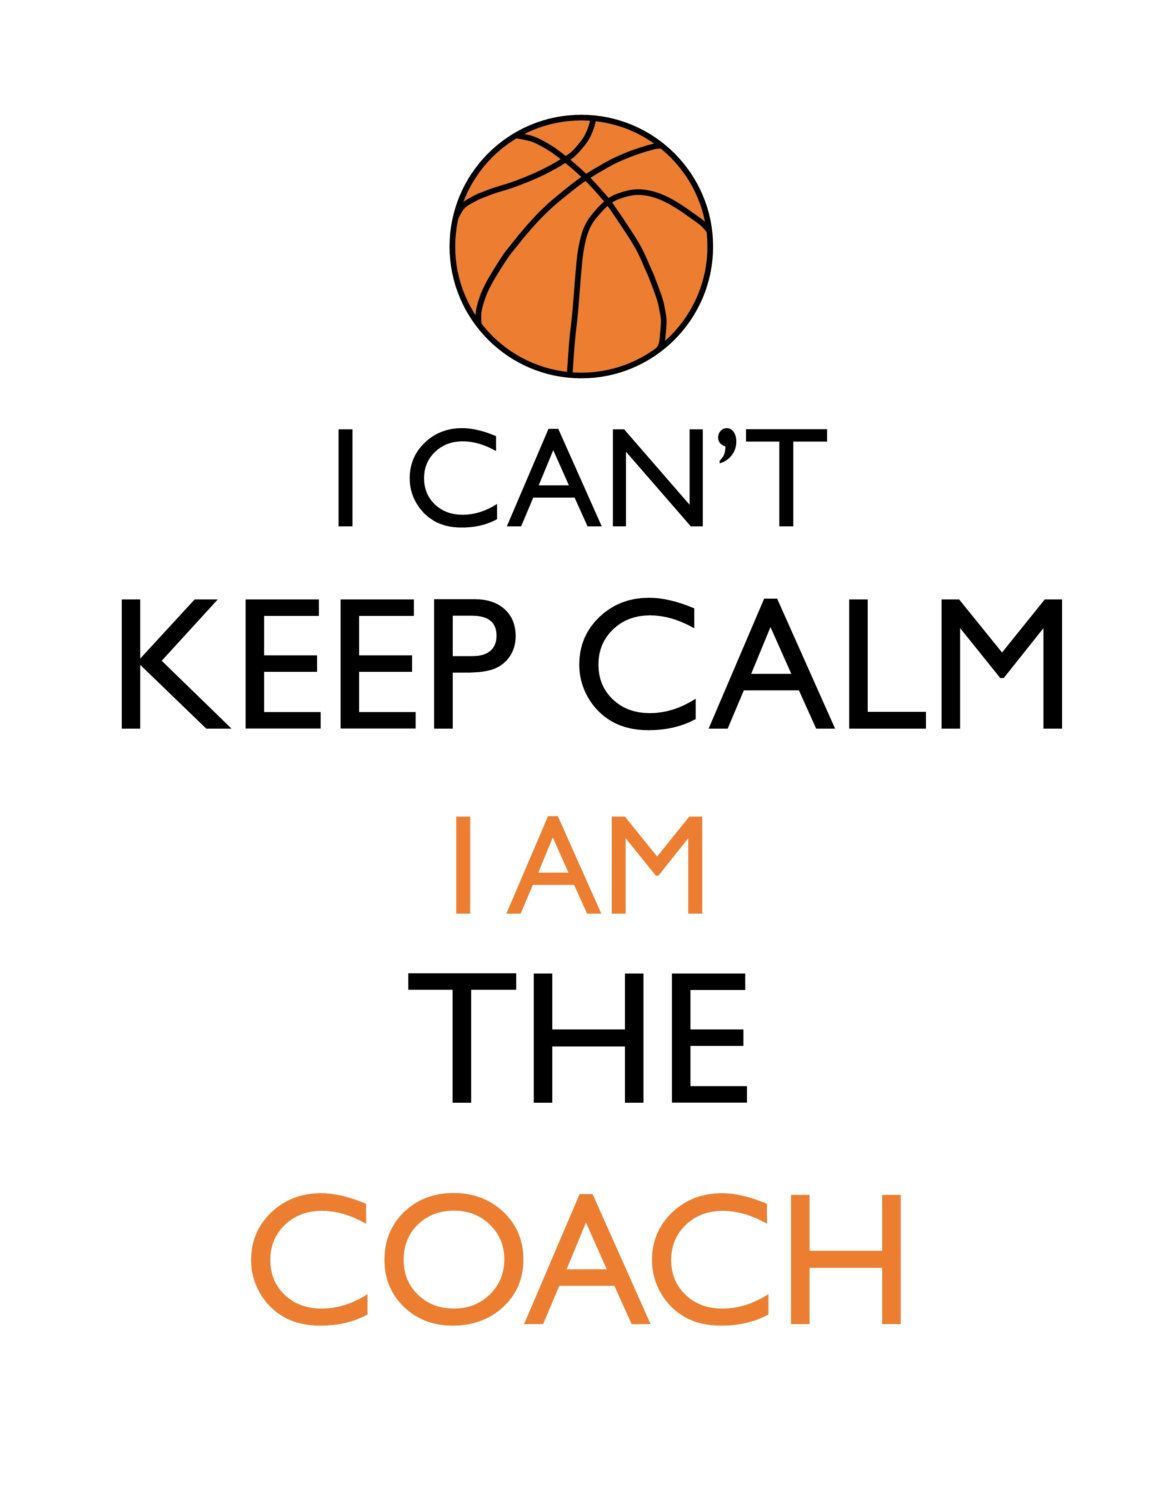 I Can't Keep Calm, I am the Coach- Basketball Coach, Coach's Gift, digital design DIY t-shirt transfer iron on, print instant download